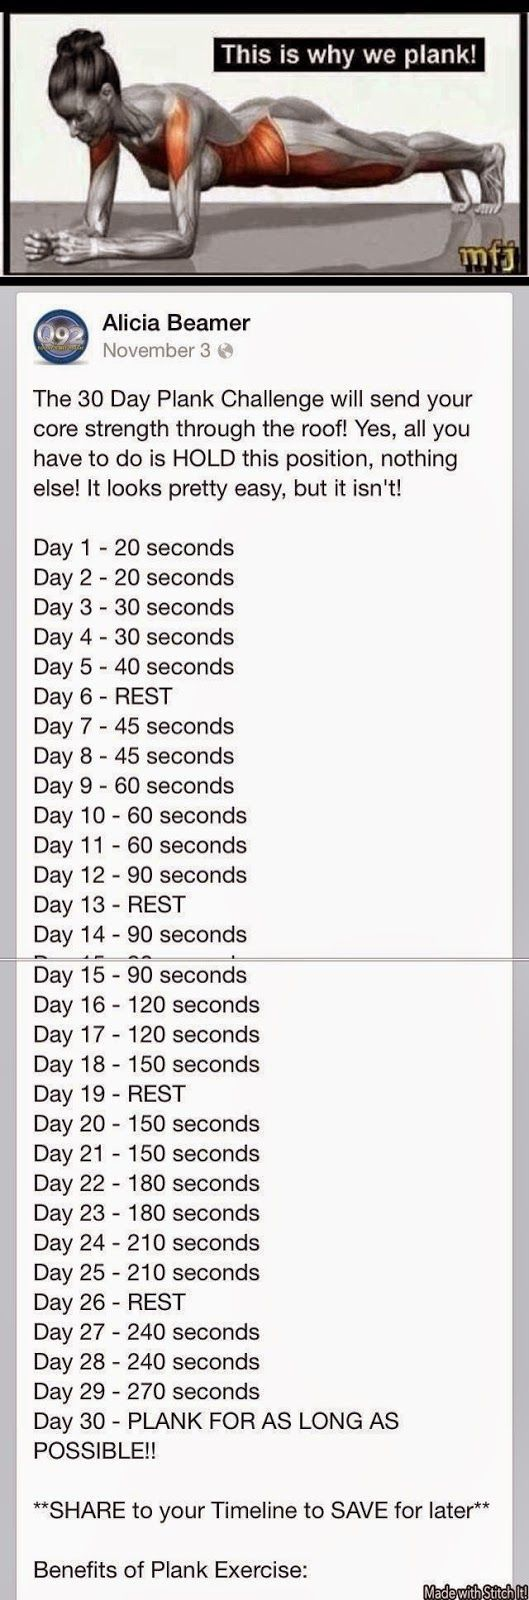 This is definitely a challenge that I'm willing to take!!